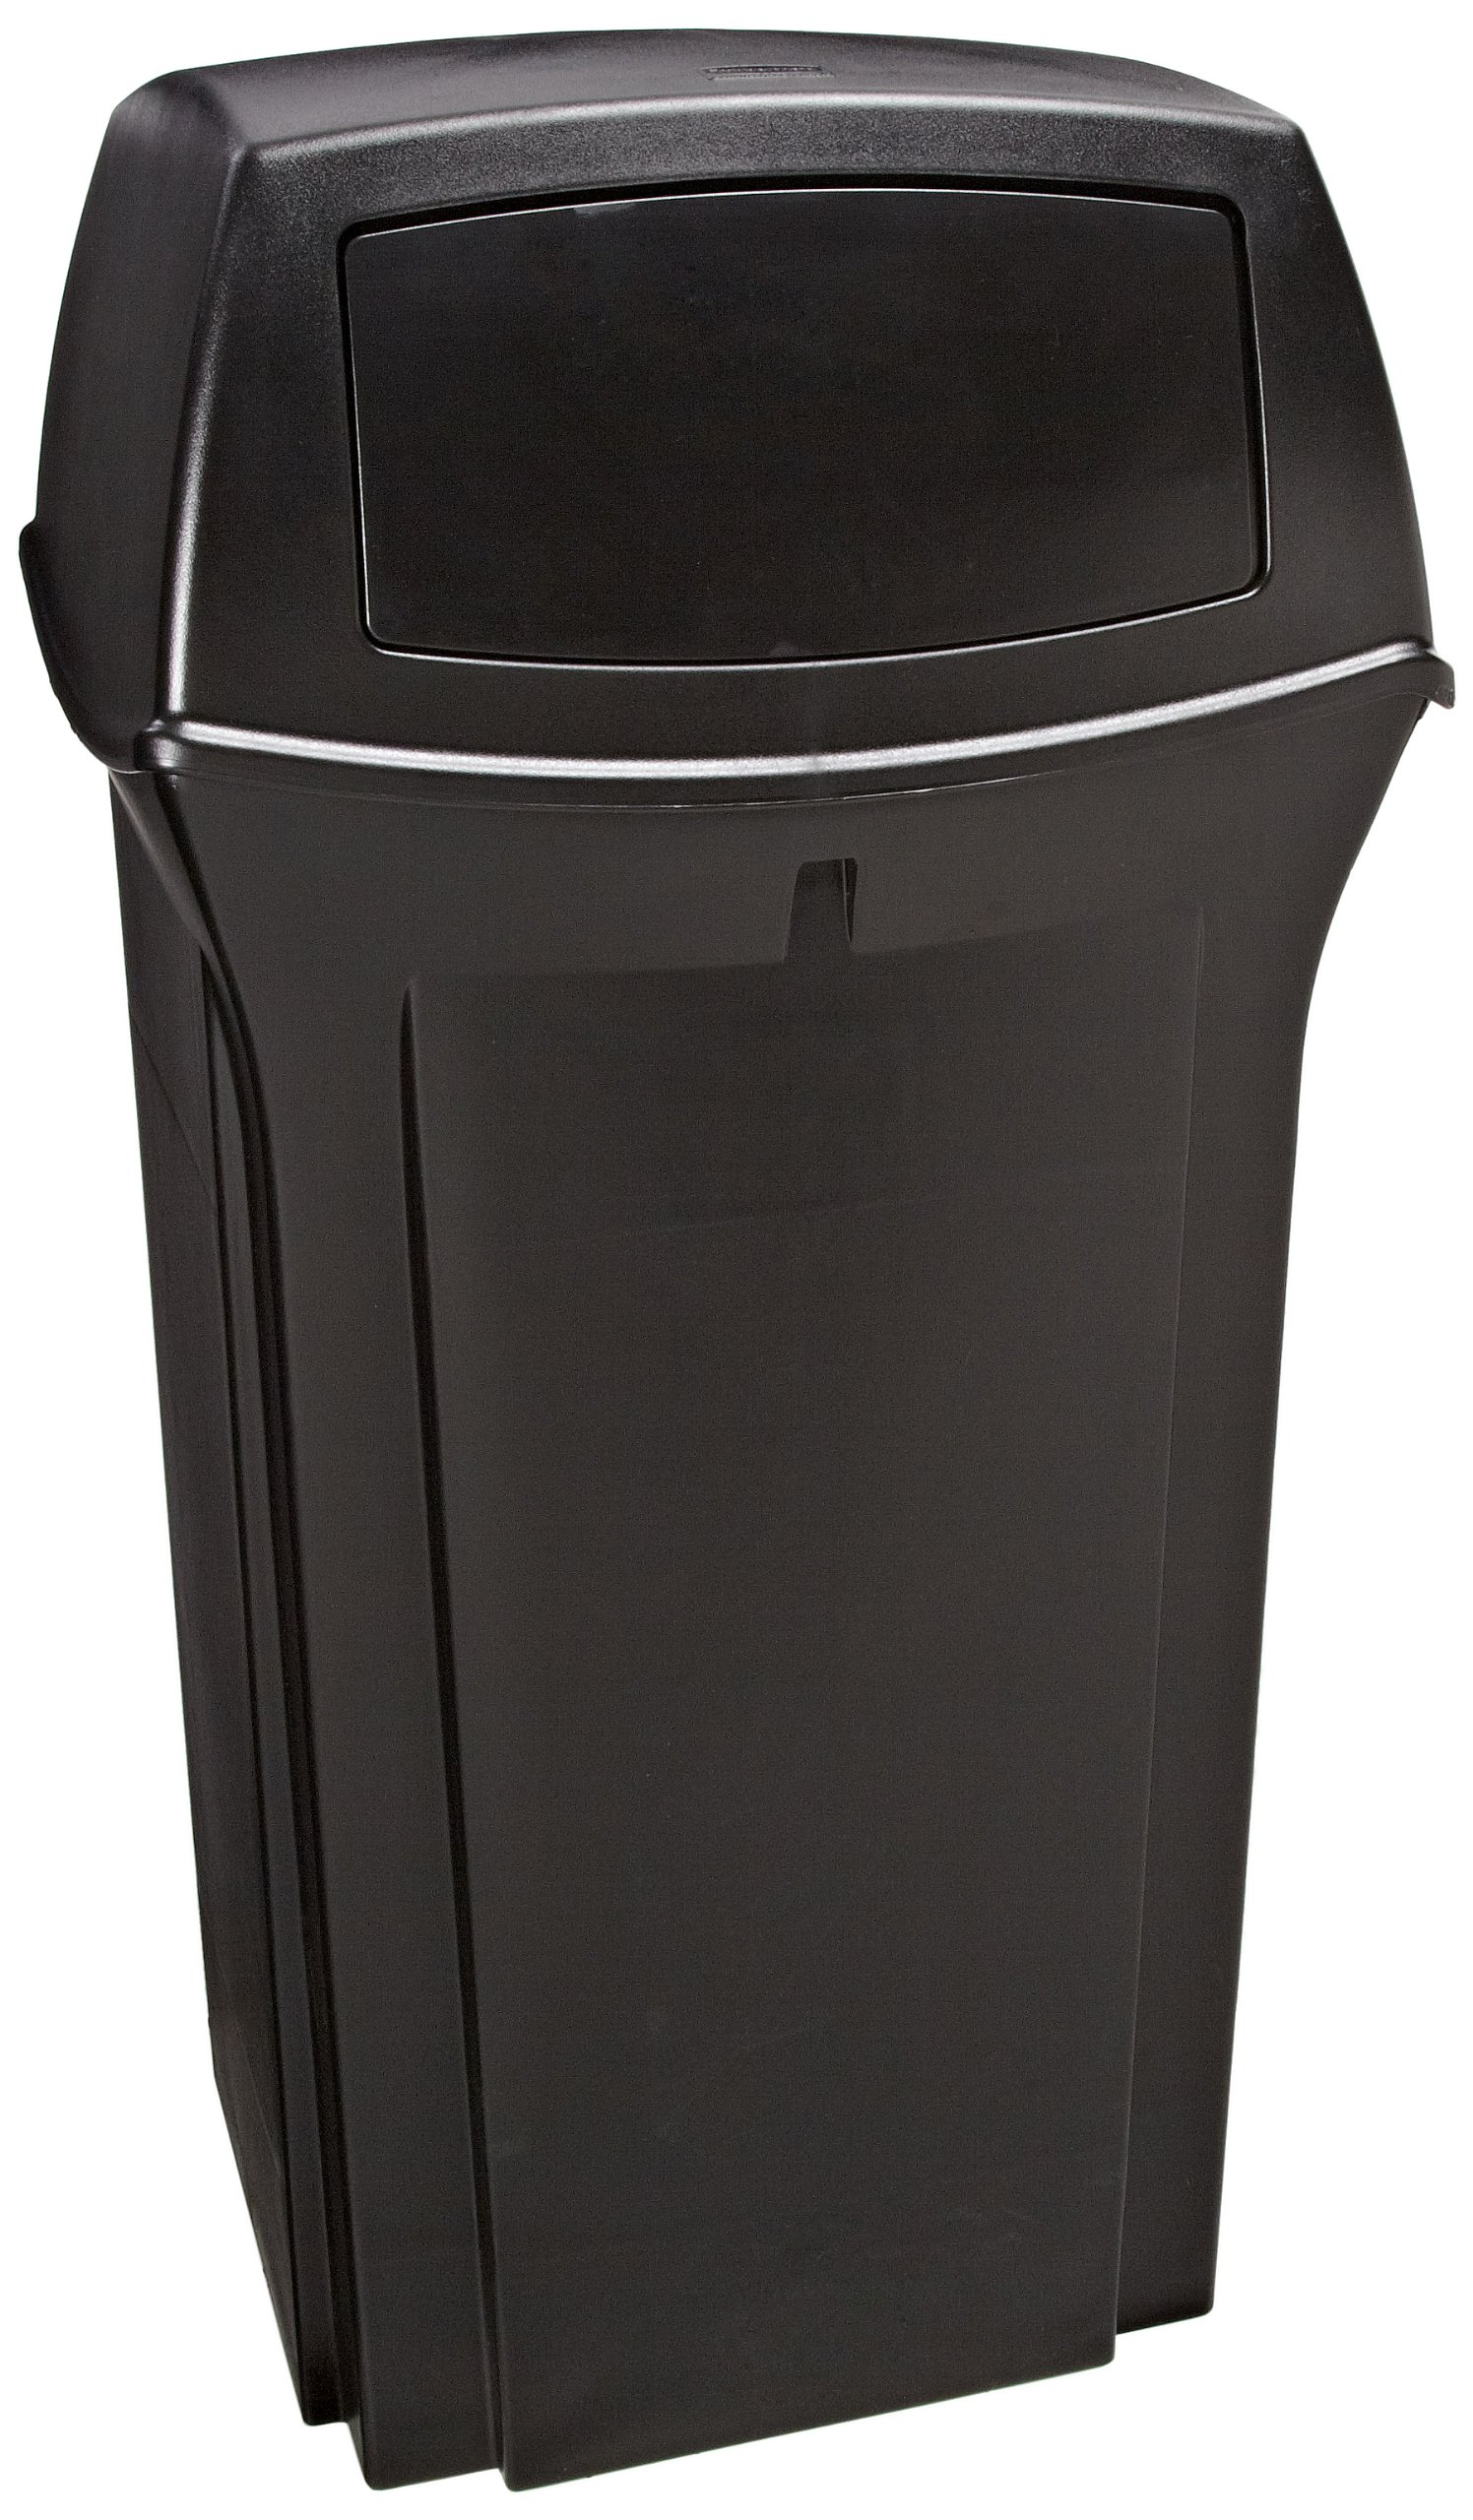 Cheap Rubbermaid Kitchen Trash Can Find Rubbermaid Kitchen Trash